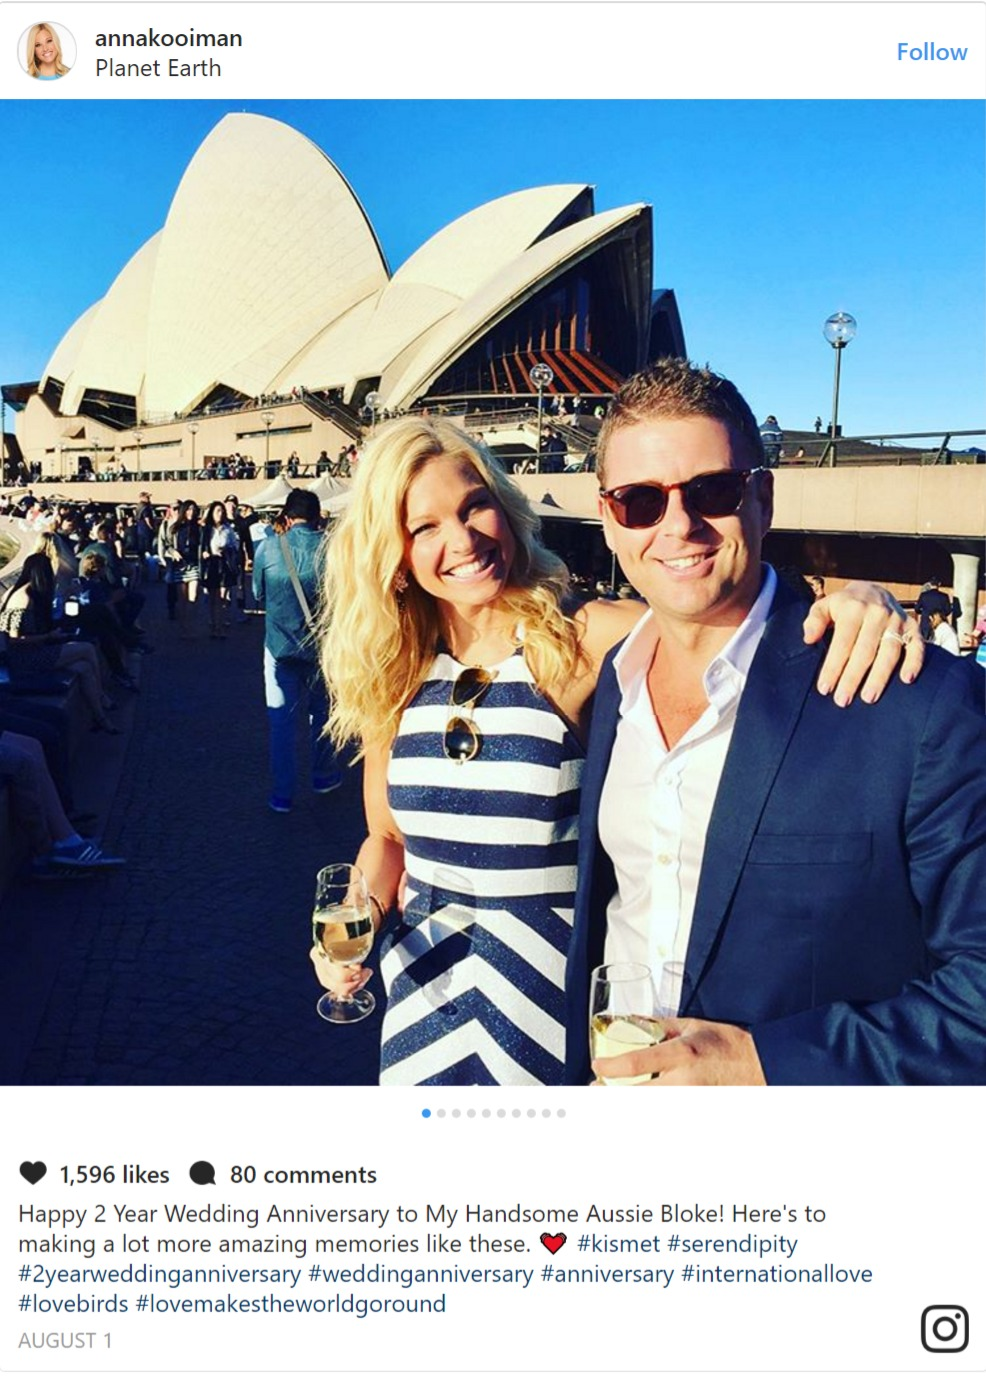 Anna Kooiman and her husband Tim Stuckey pose for the camera in front of the Sydney Opera House